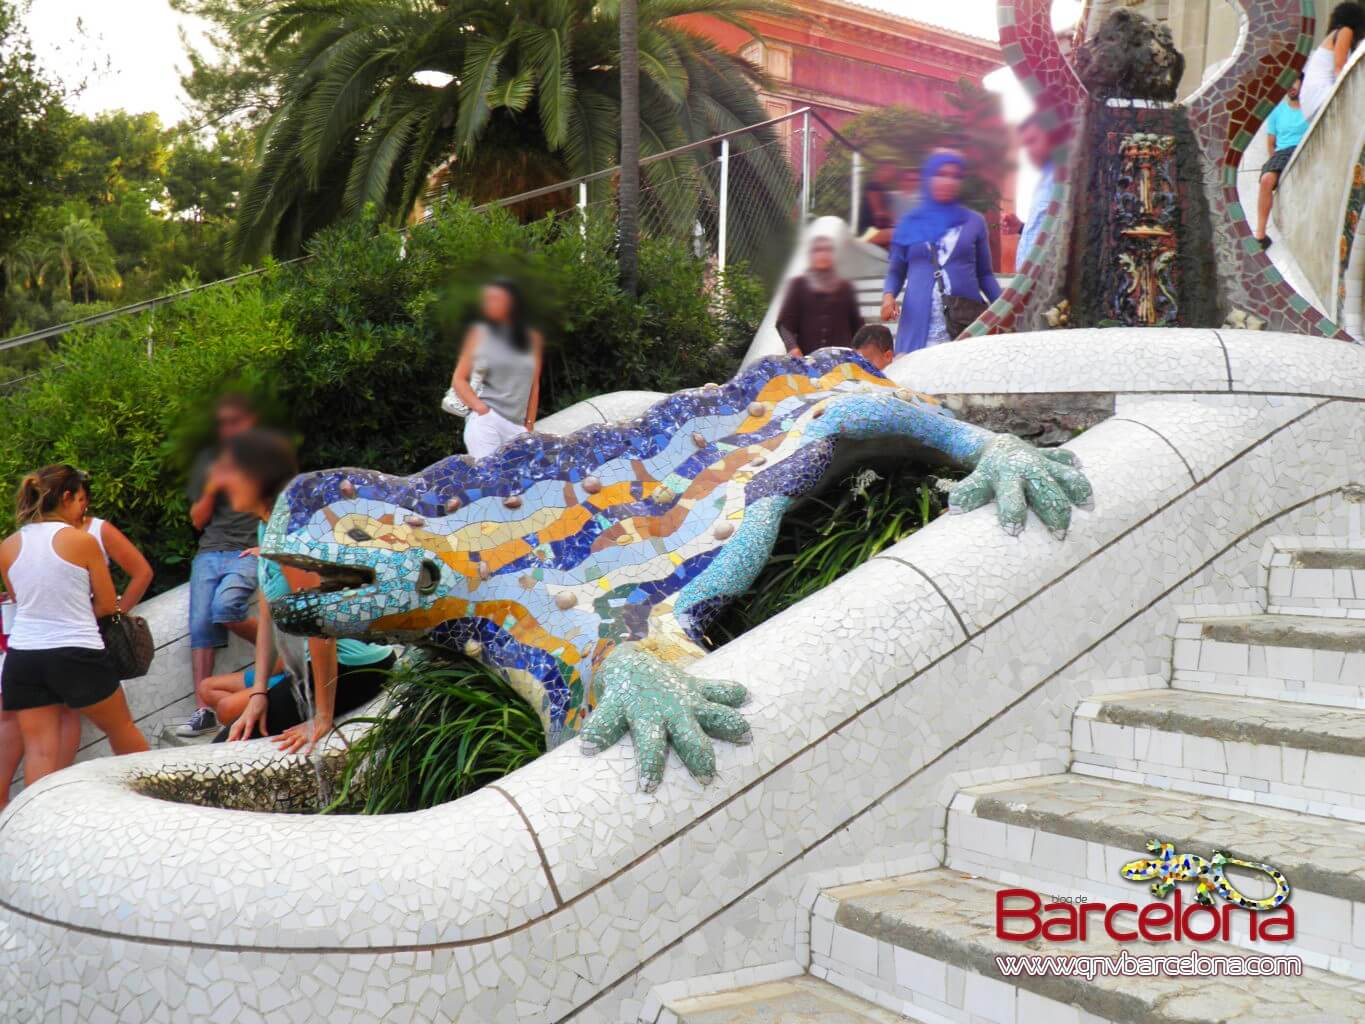 park-guell-barcelona-28